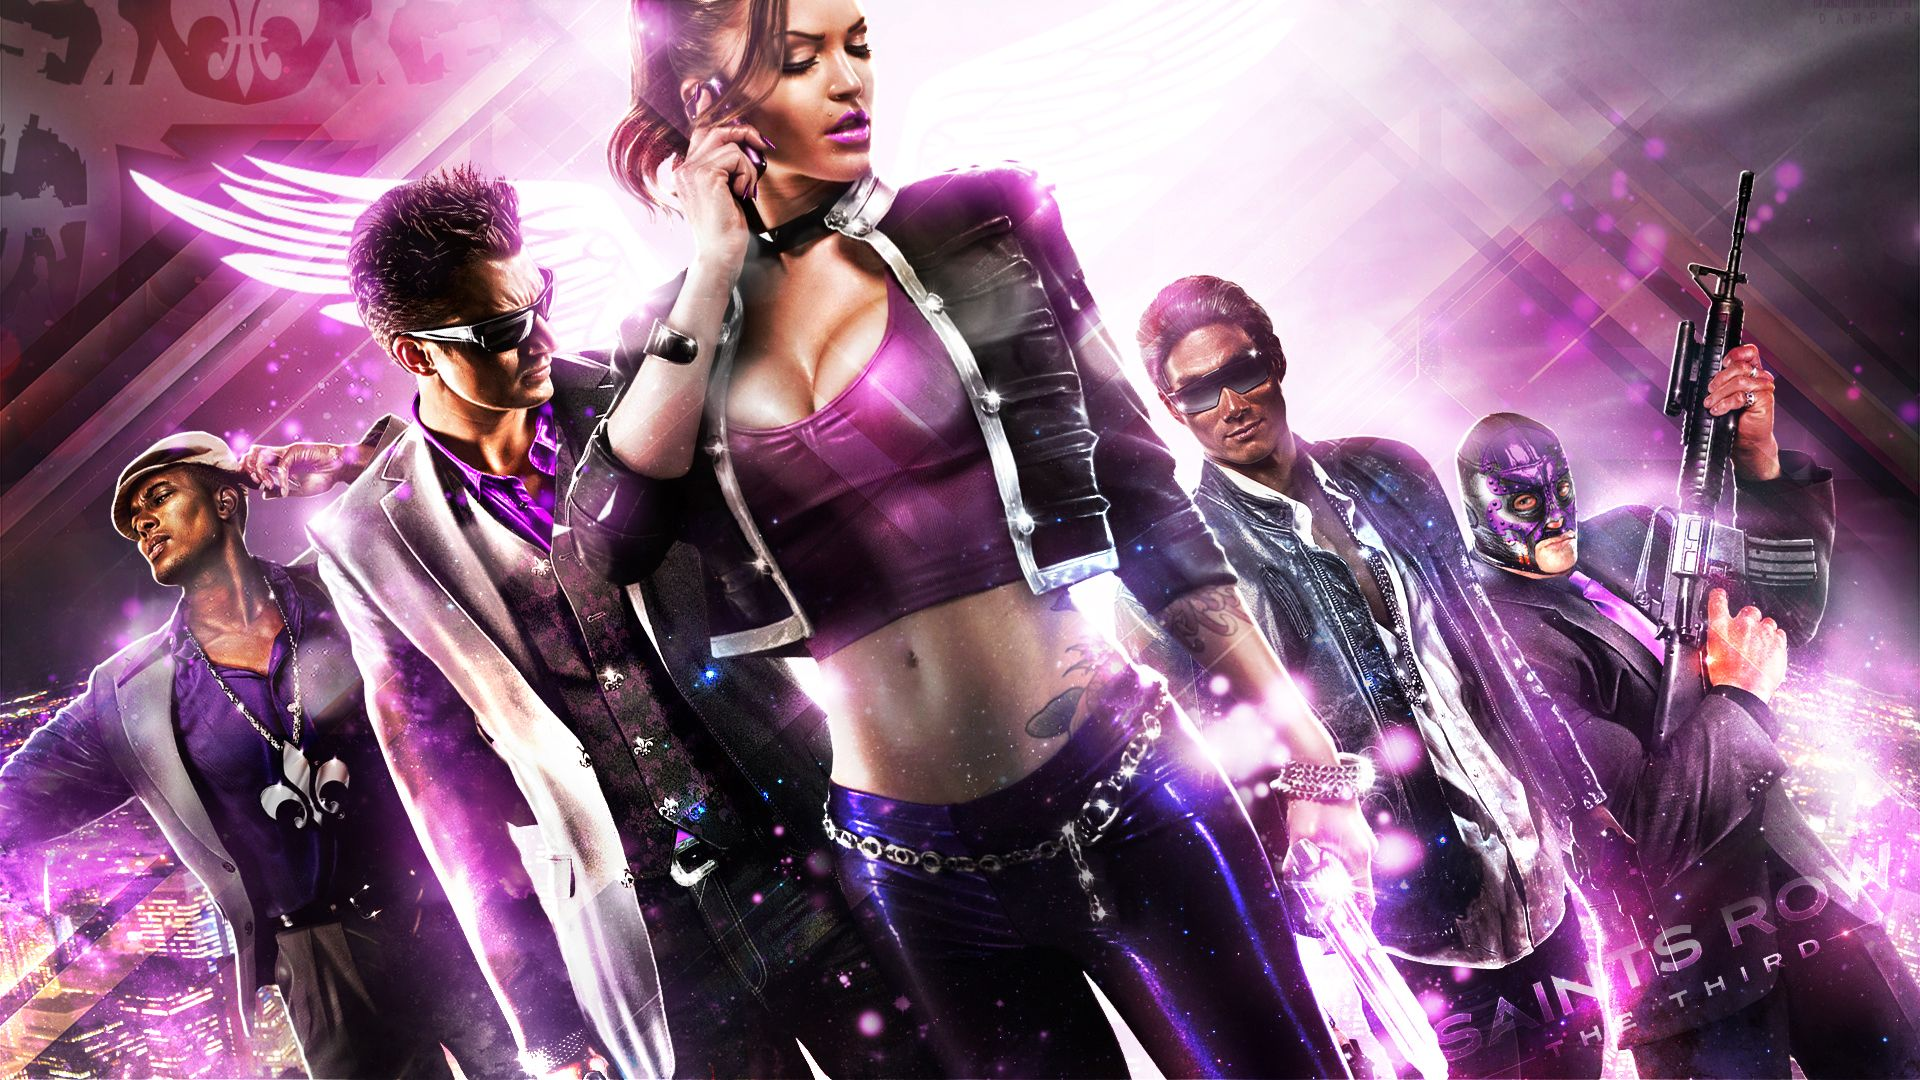 saints row 4 meet the president song to popular